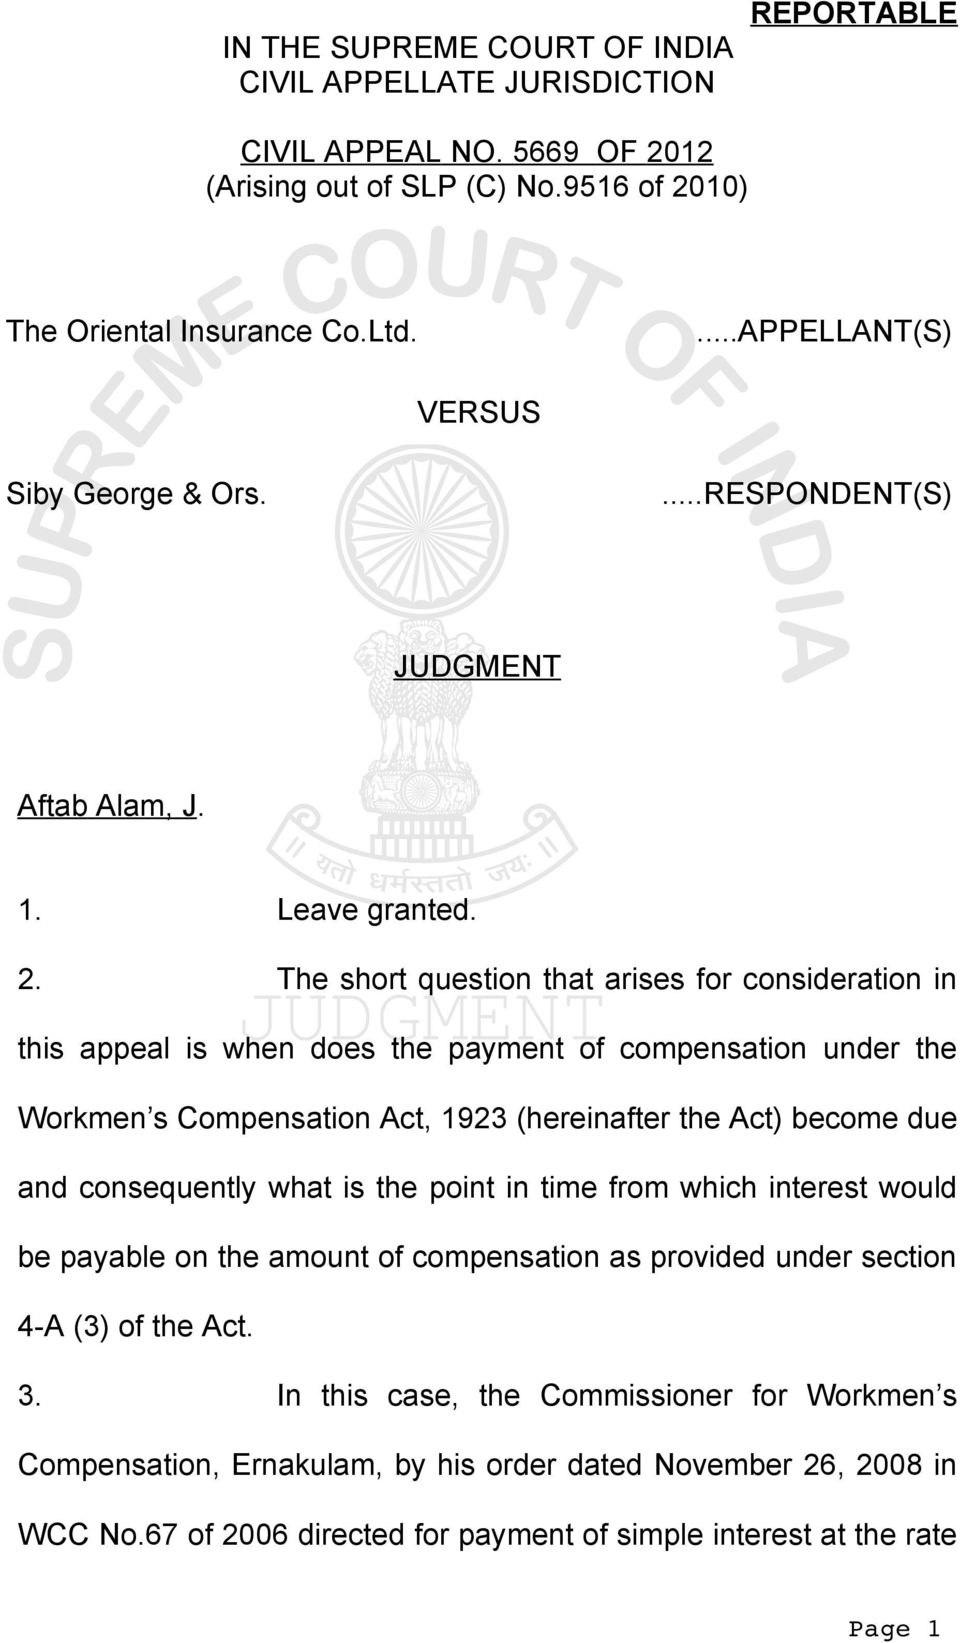 The short question that arises for consideration in this appeal is when does the payment of compensation under the Workmen s Compensation Act, 1923 (hereinafter the Act) become due and consequently